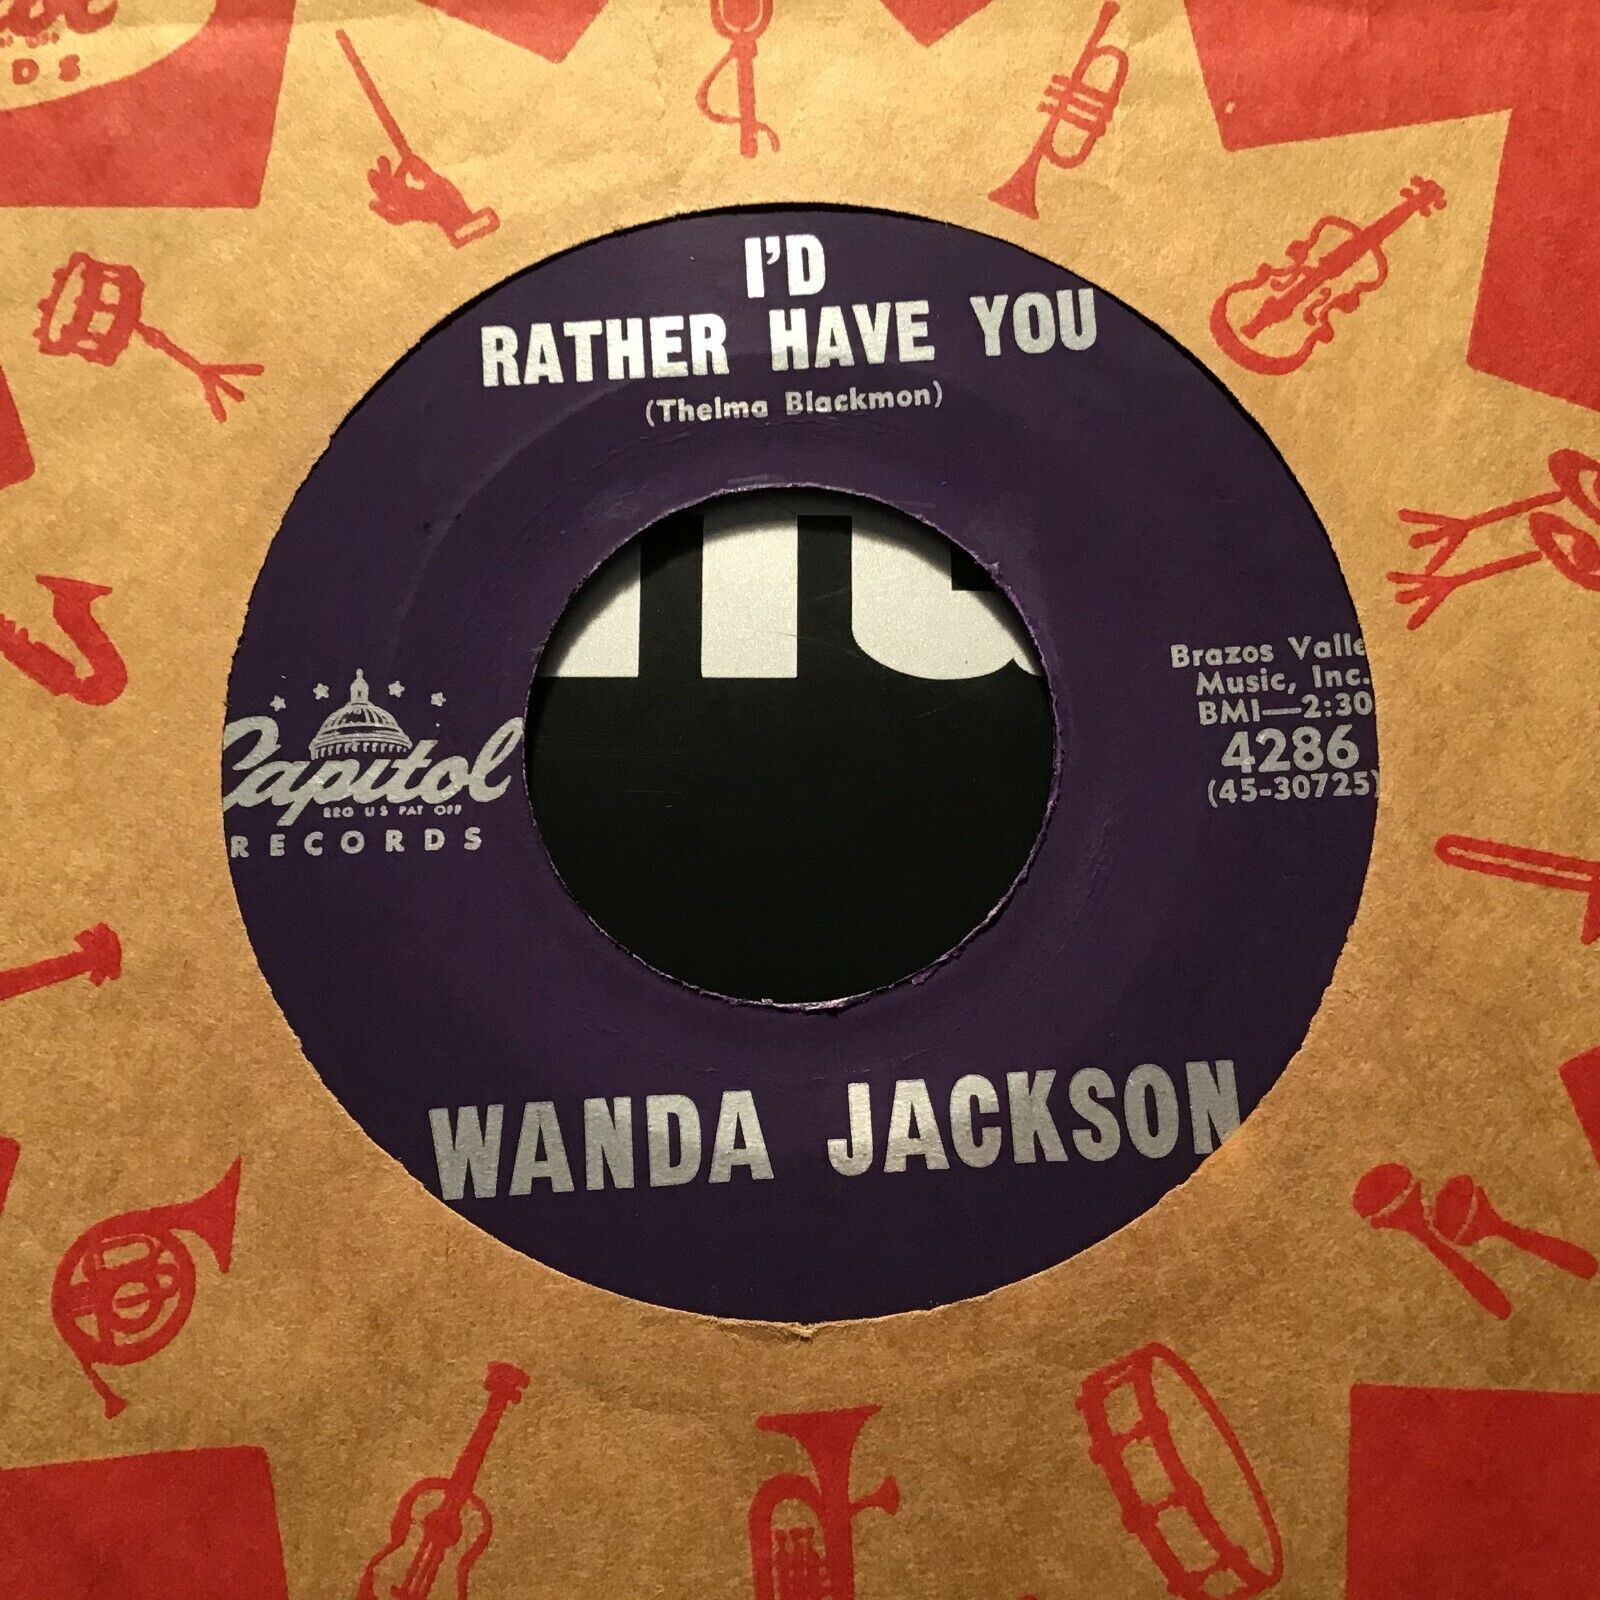 45 RPM Wanda Jackson CAPITOL 4286 I d Rather Have You / Reaching VG  - $3.00